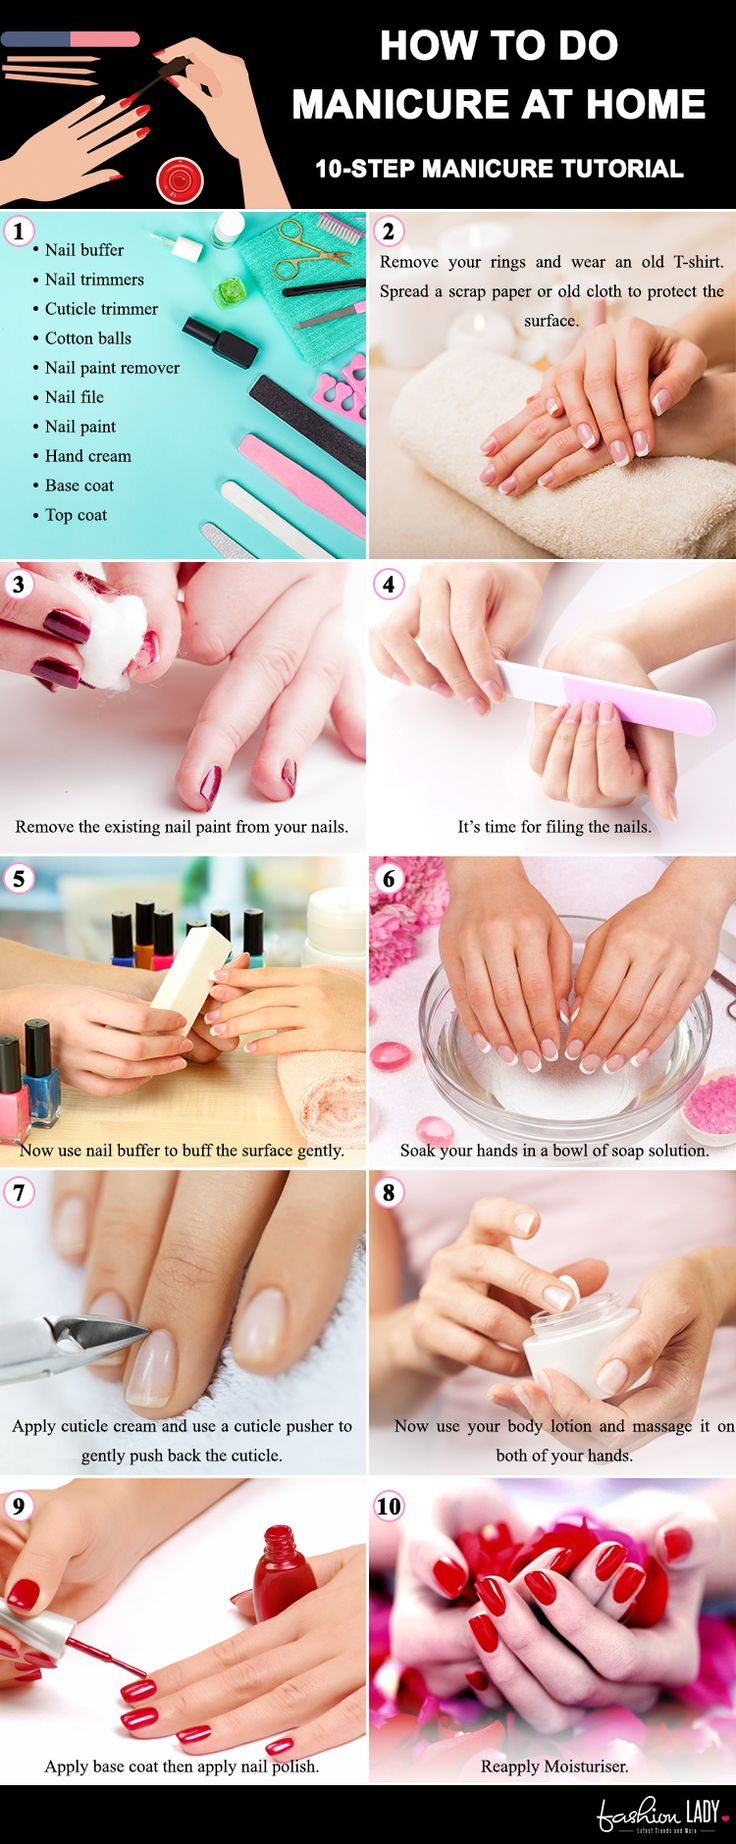 How To Do Manicure At Home 10-Step Manicure Tutorial